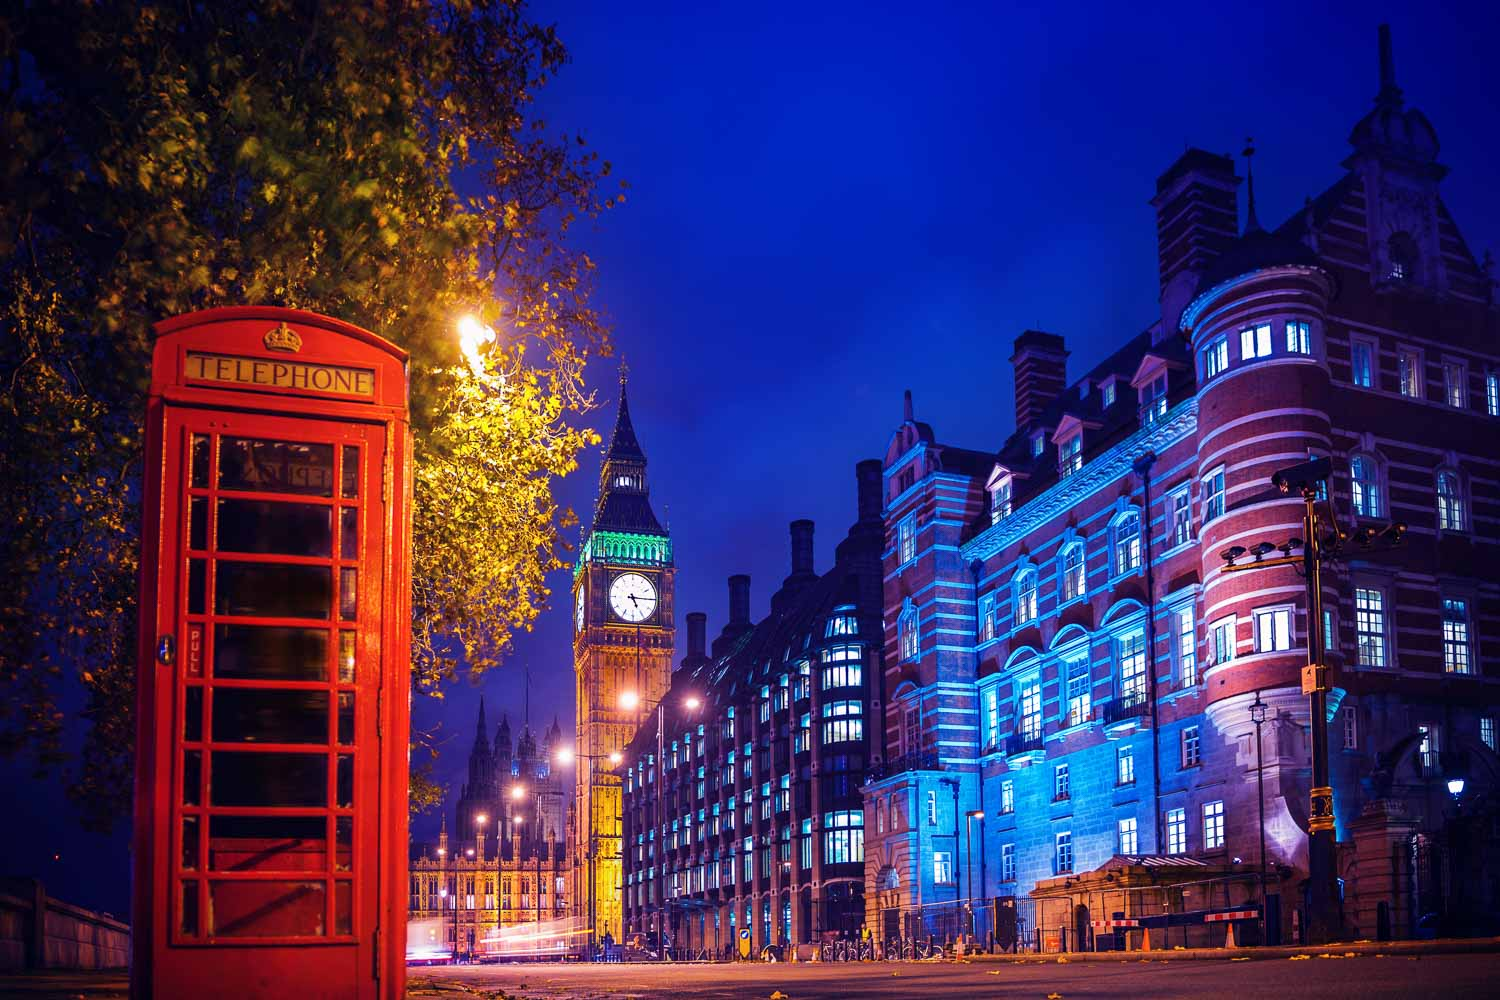 Phone box and Big Ben at night